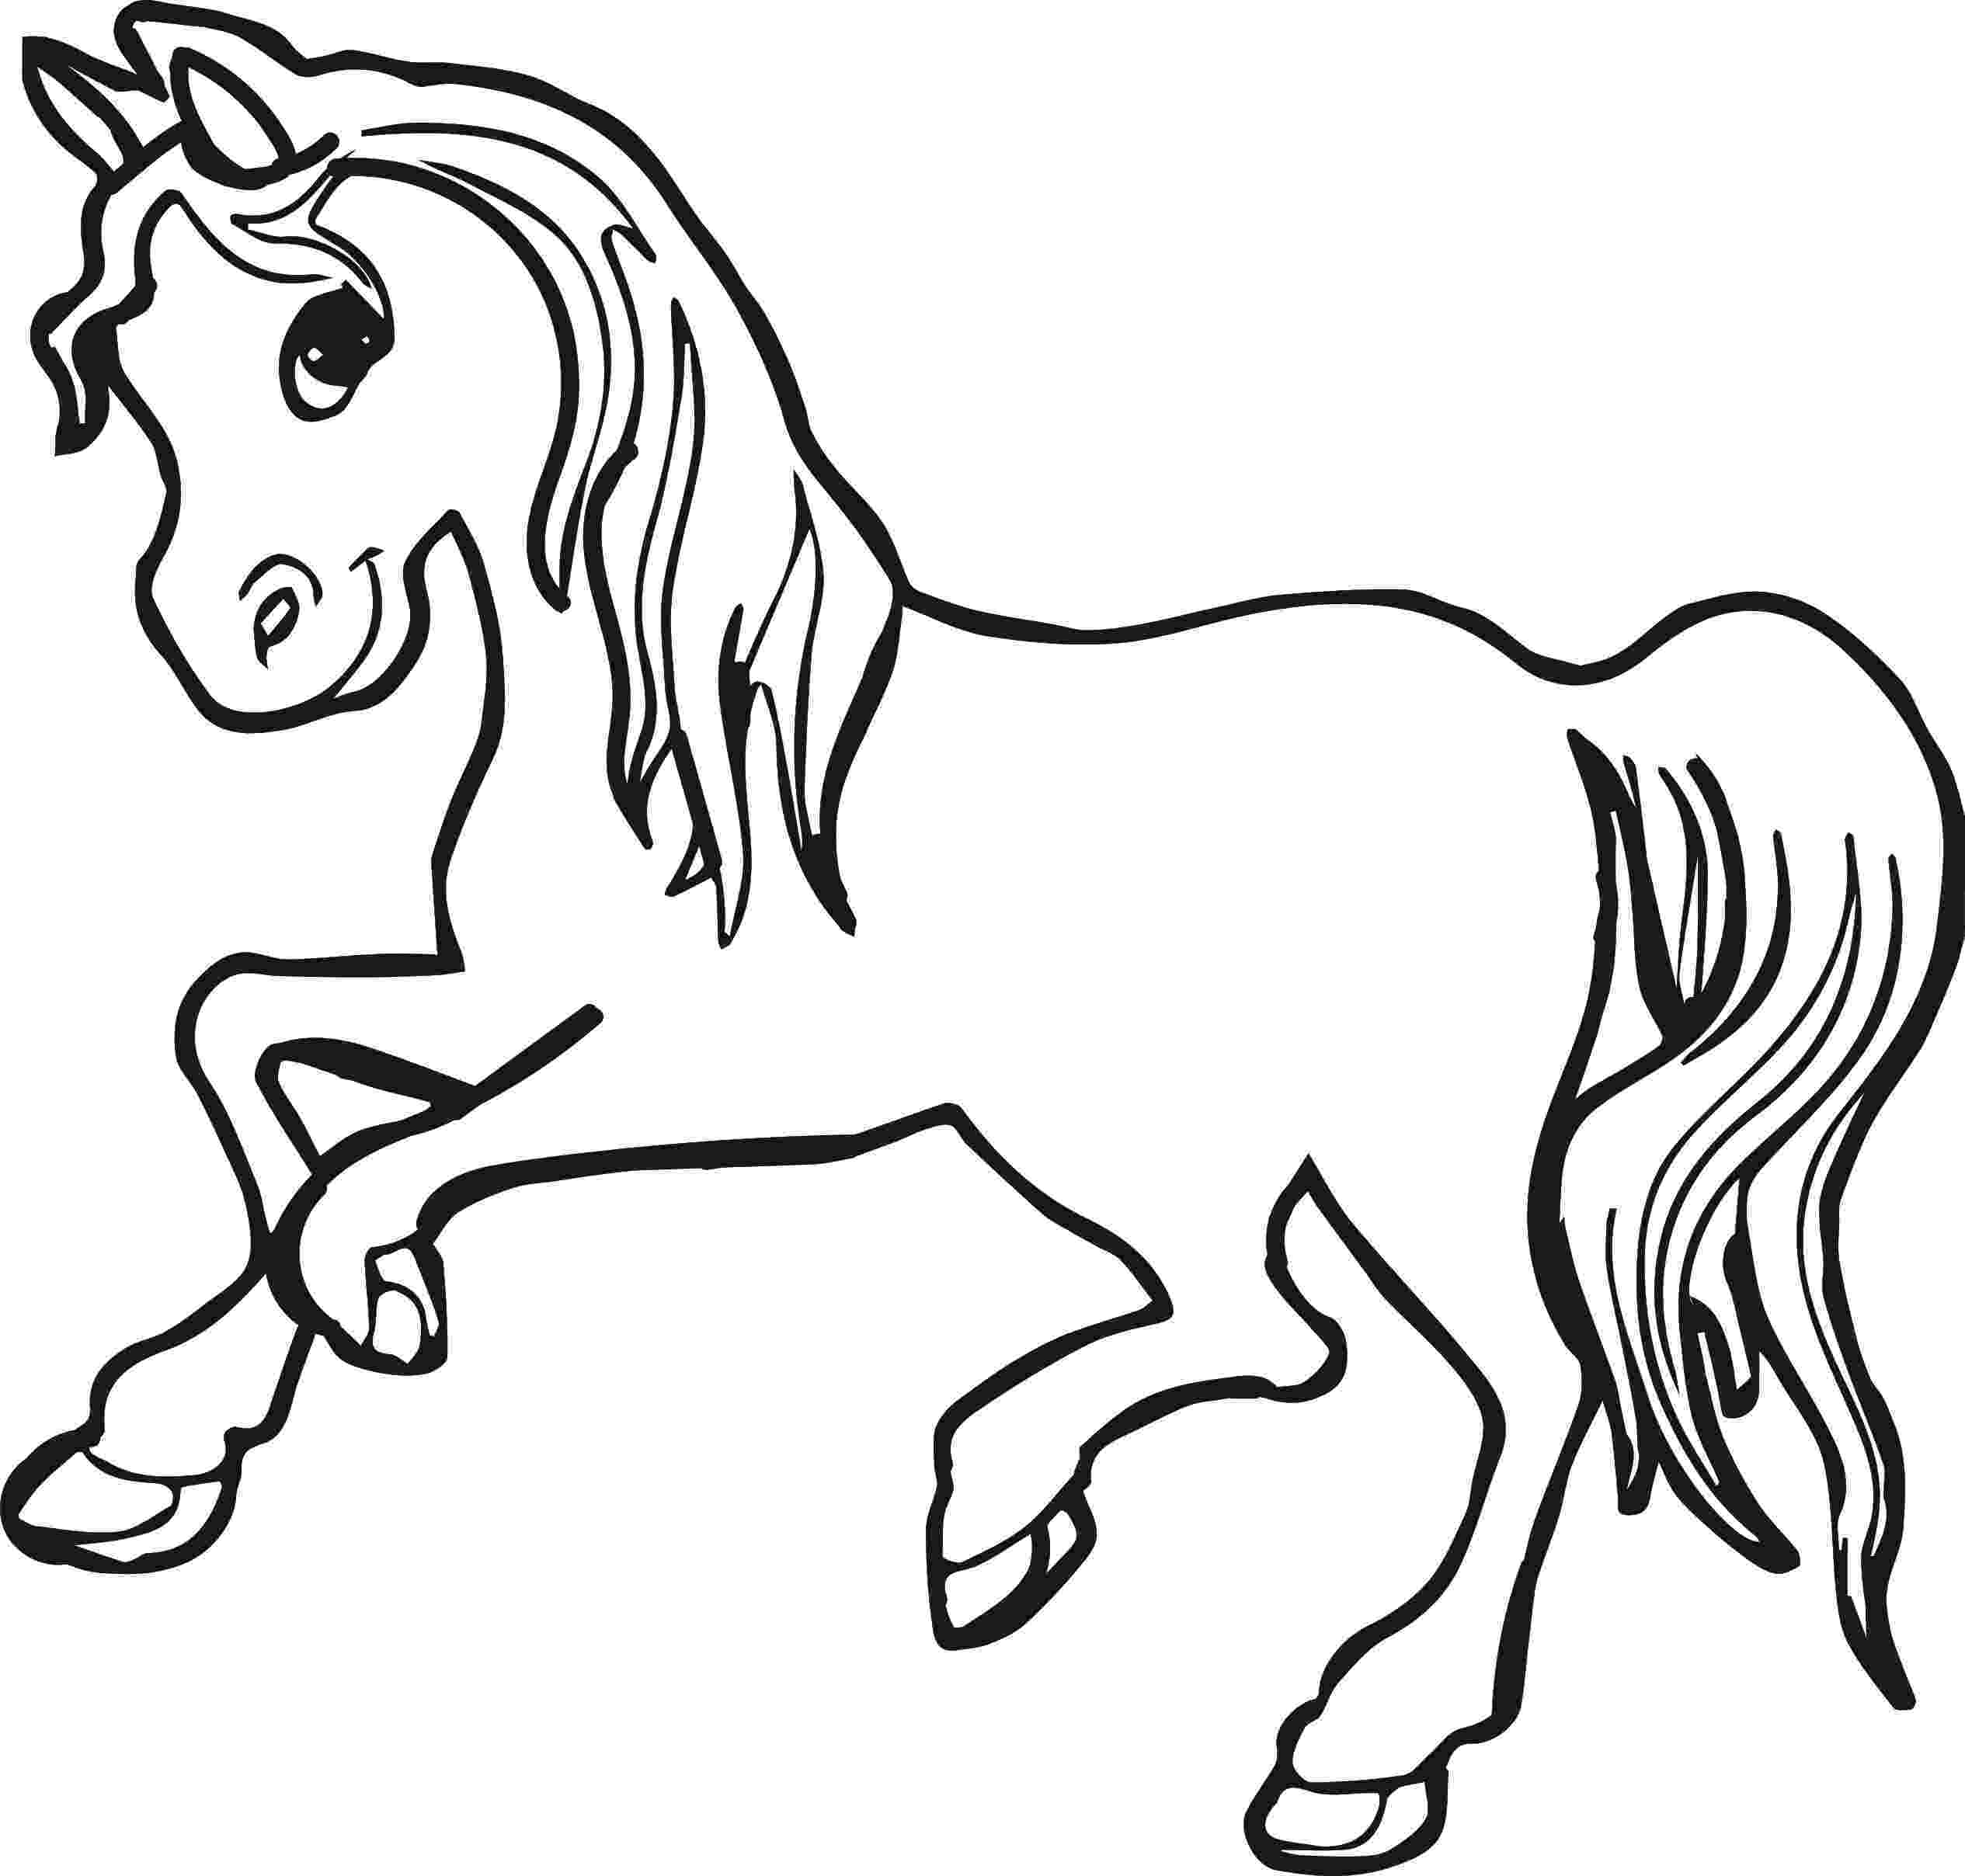 picture of horse to color horse coloring pages for kids coloring pages for kids to of horse picture color